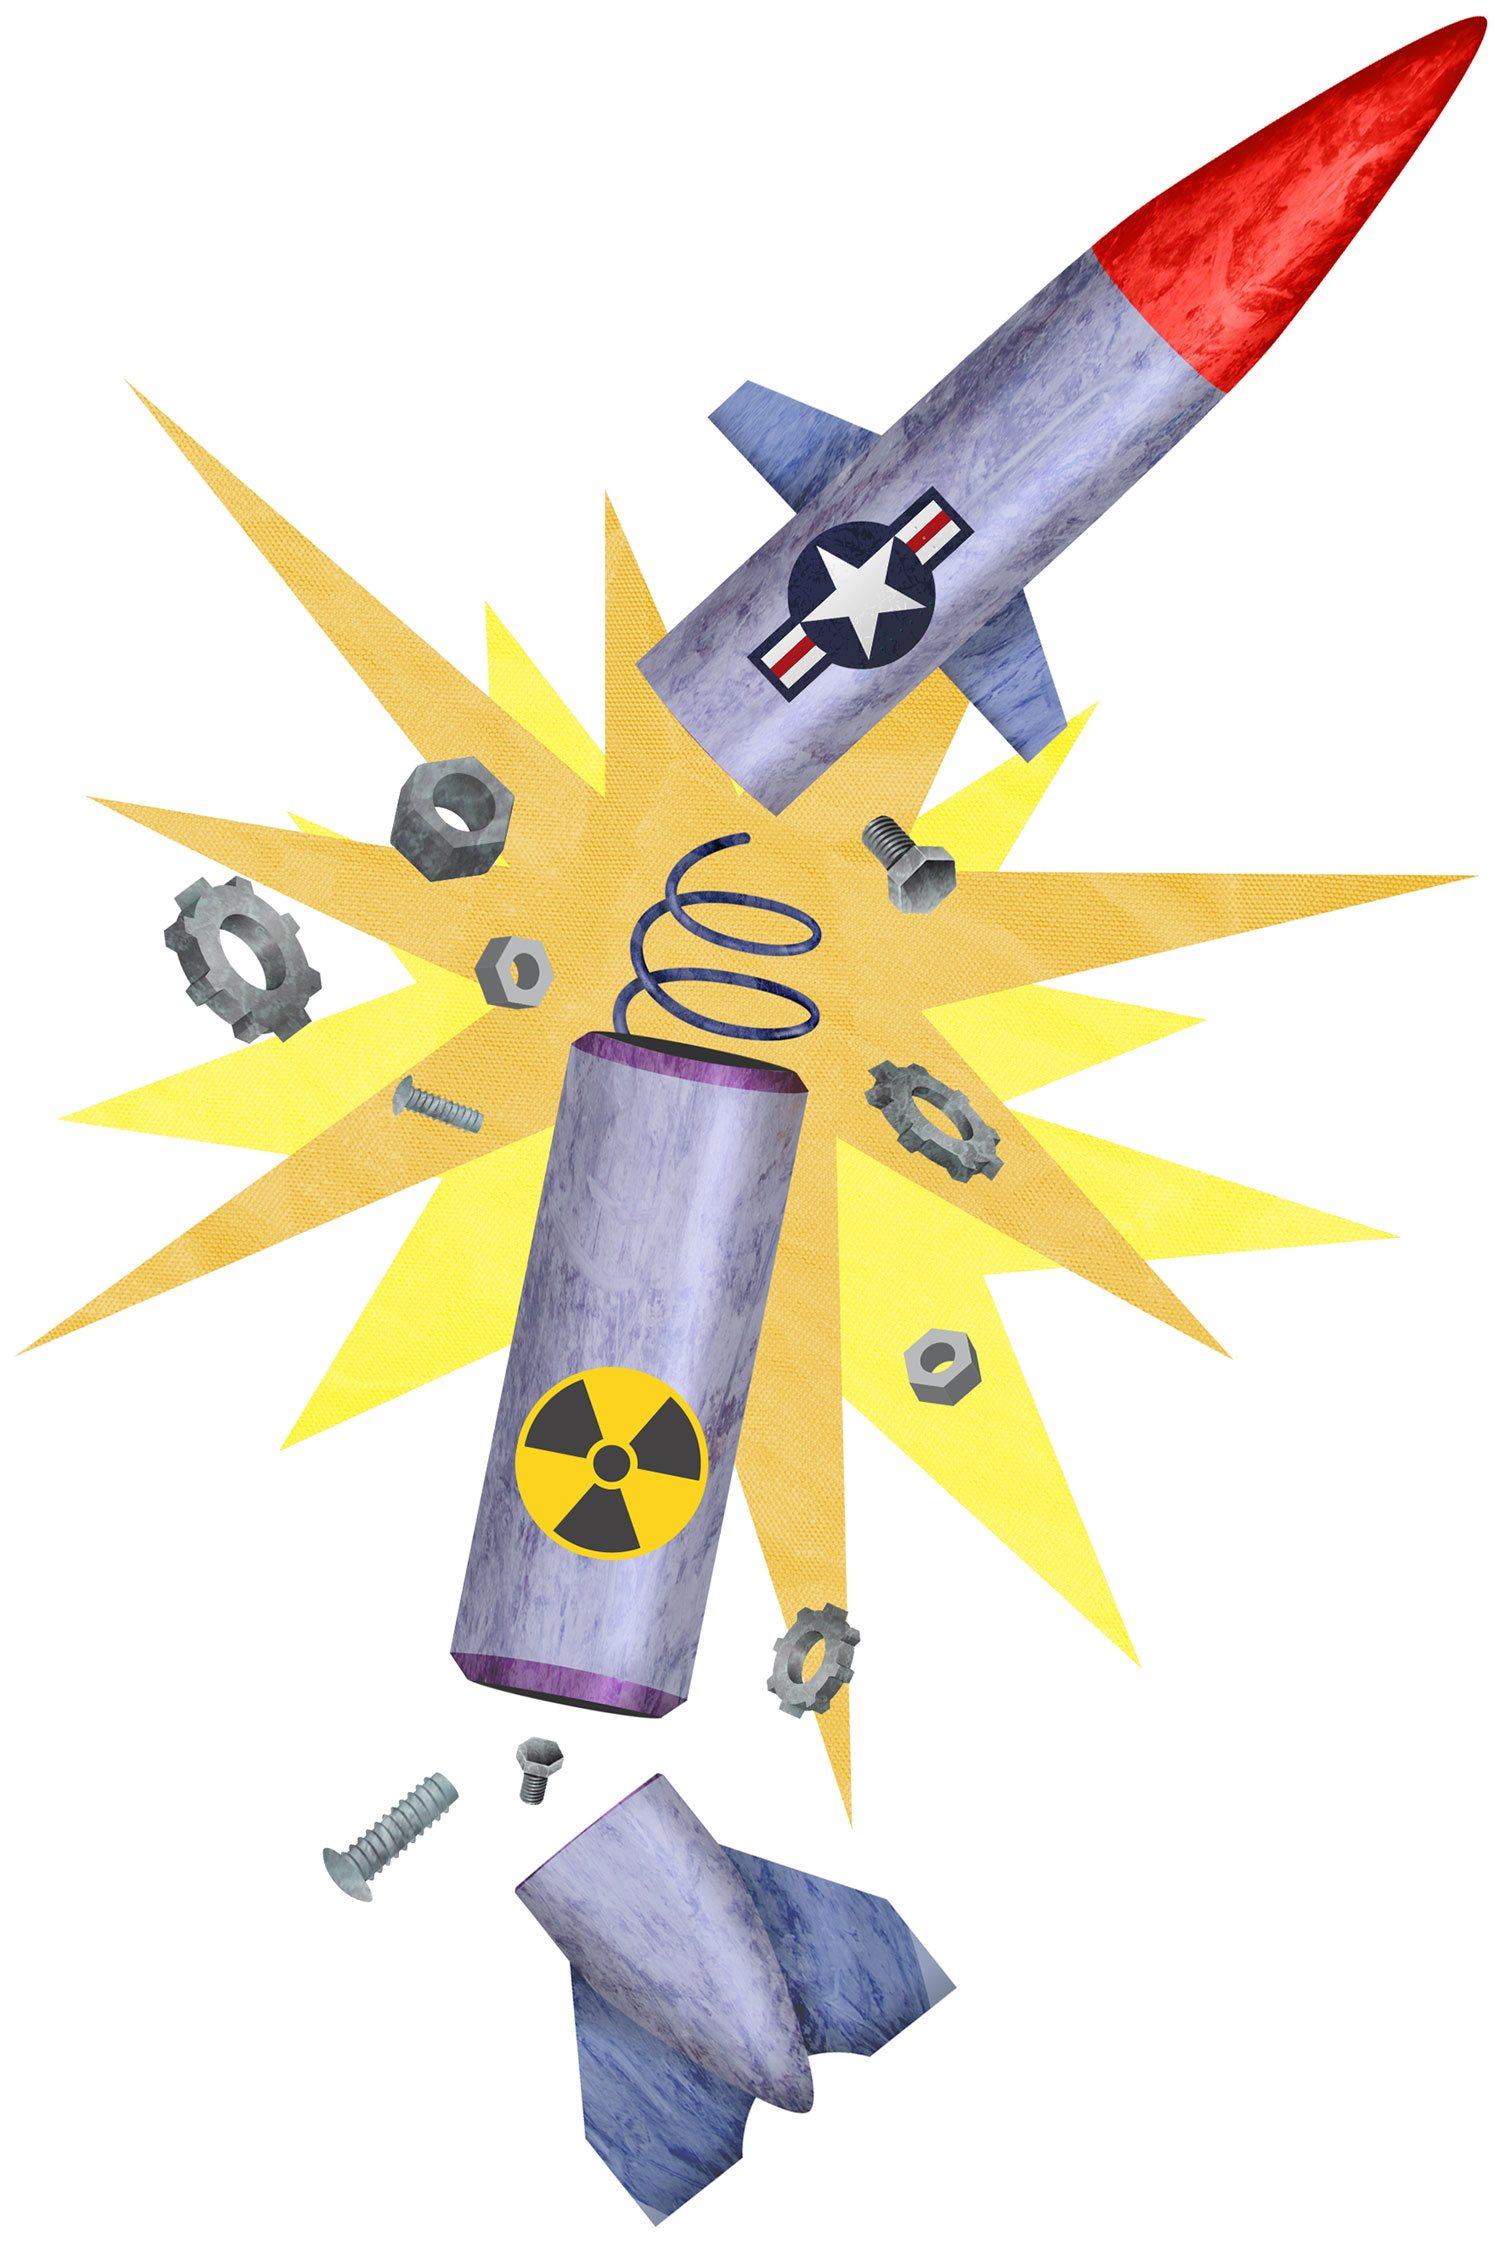 How reliable are nuclear weapons